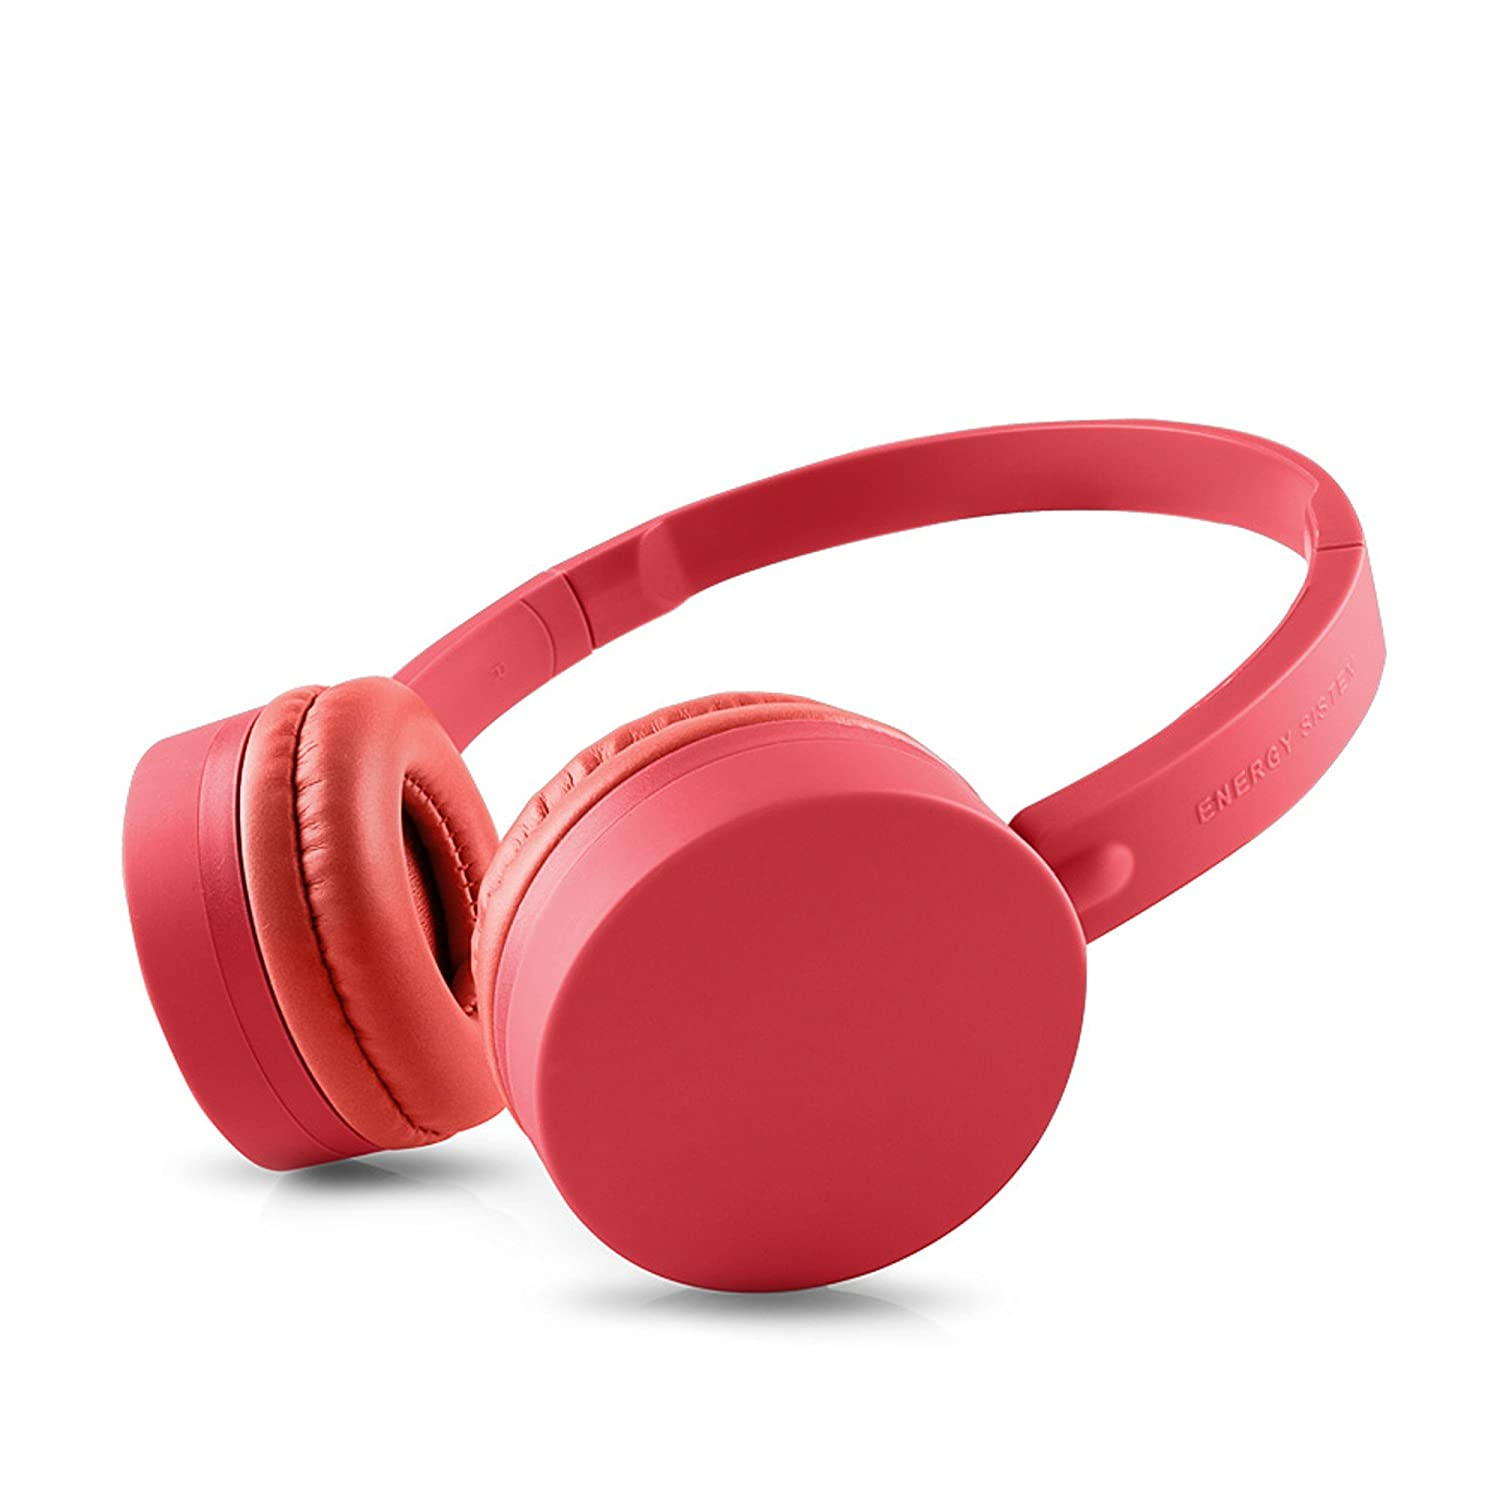 Energy Sistem 42483 - Auriculares con Bluetooth, color coral: Amazon.es: Electrónica